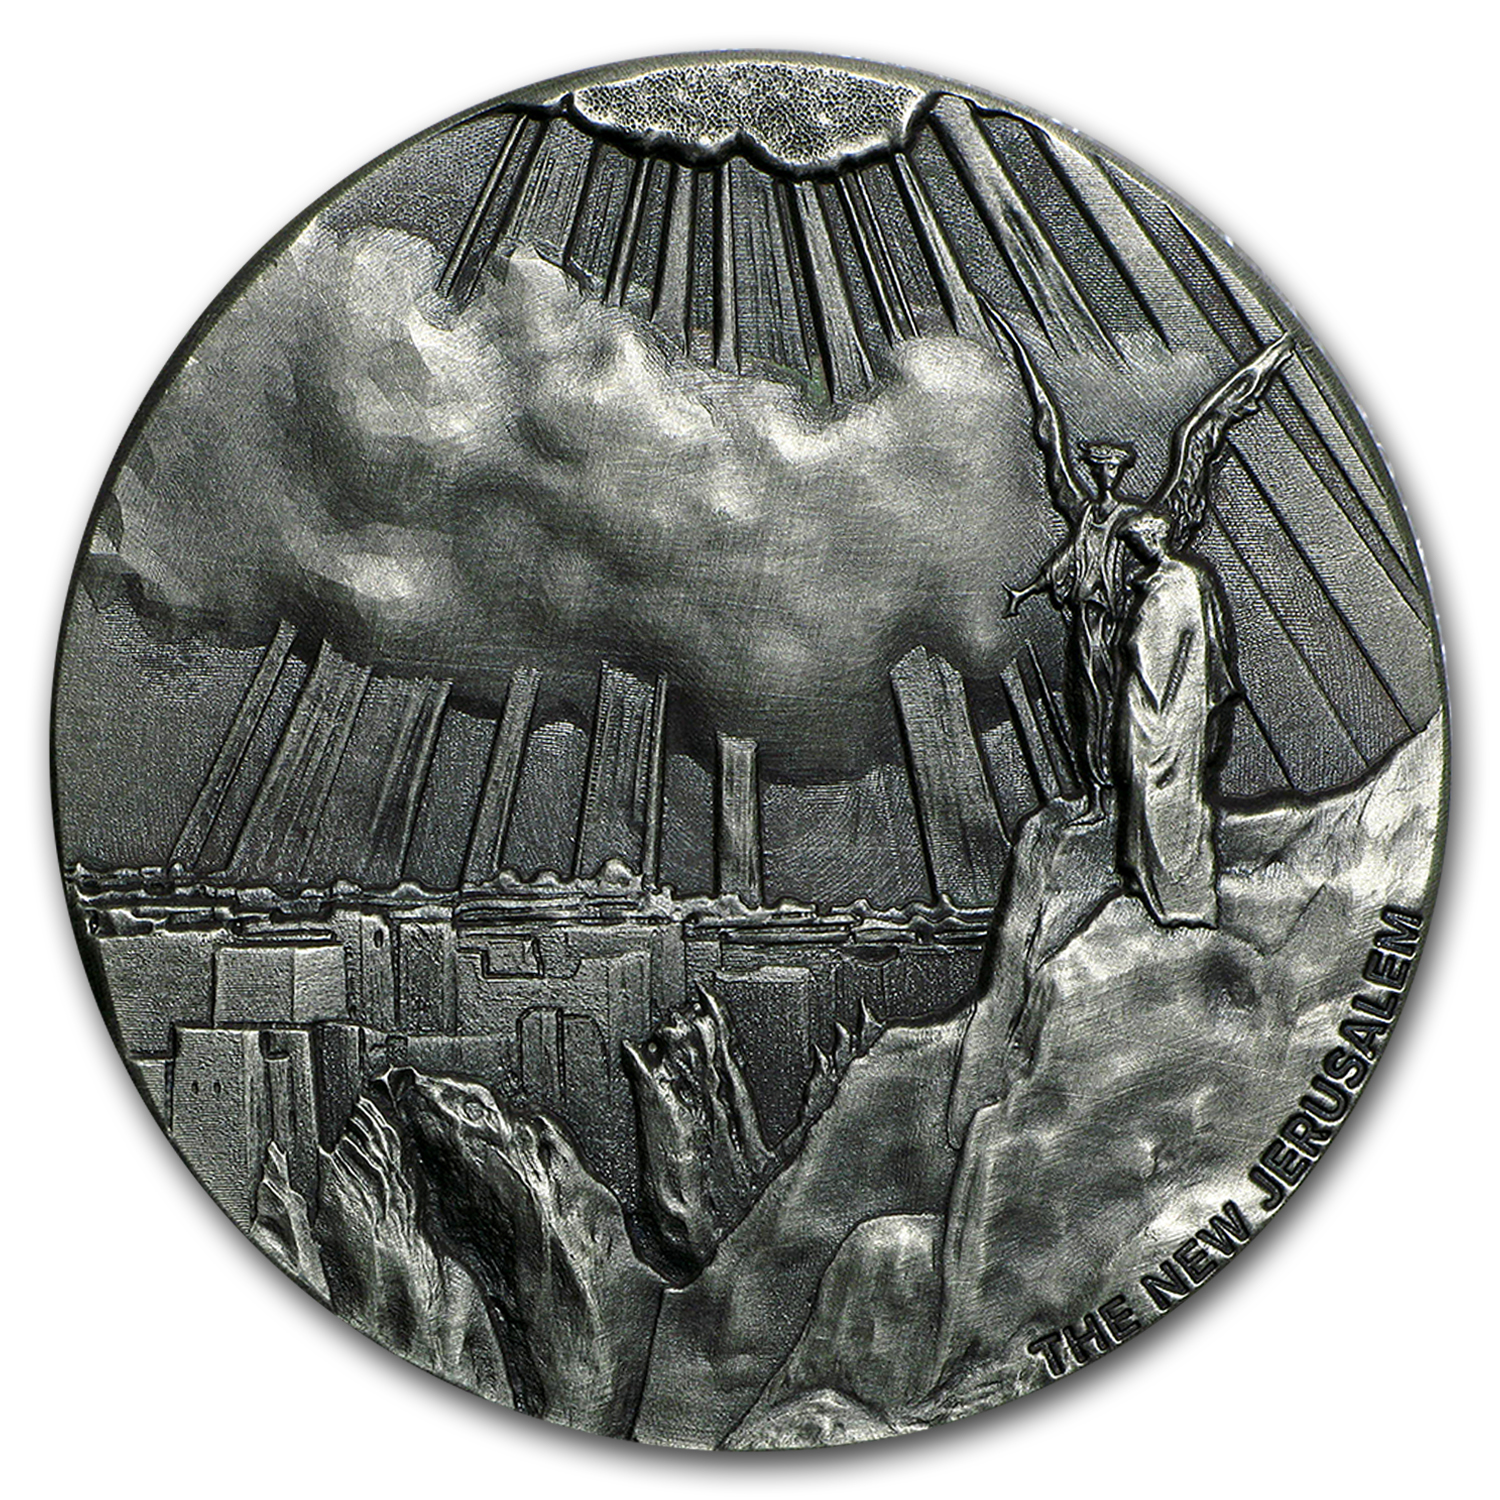 2015 2 oz Silver Coin - Biblical Series (New Jerusalem)